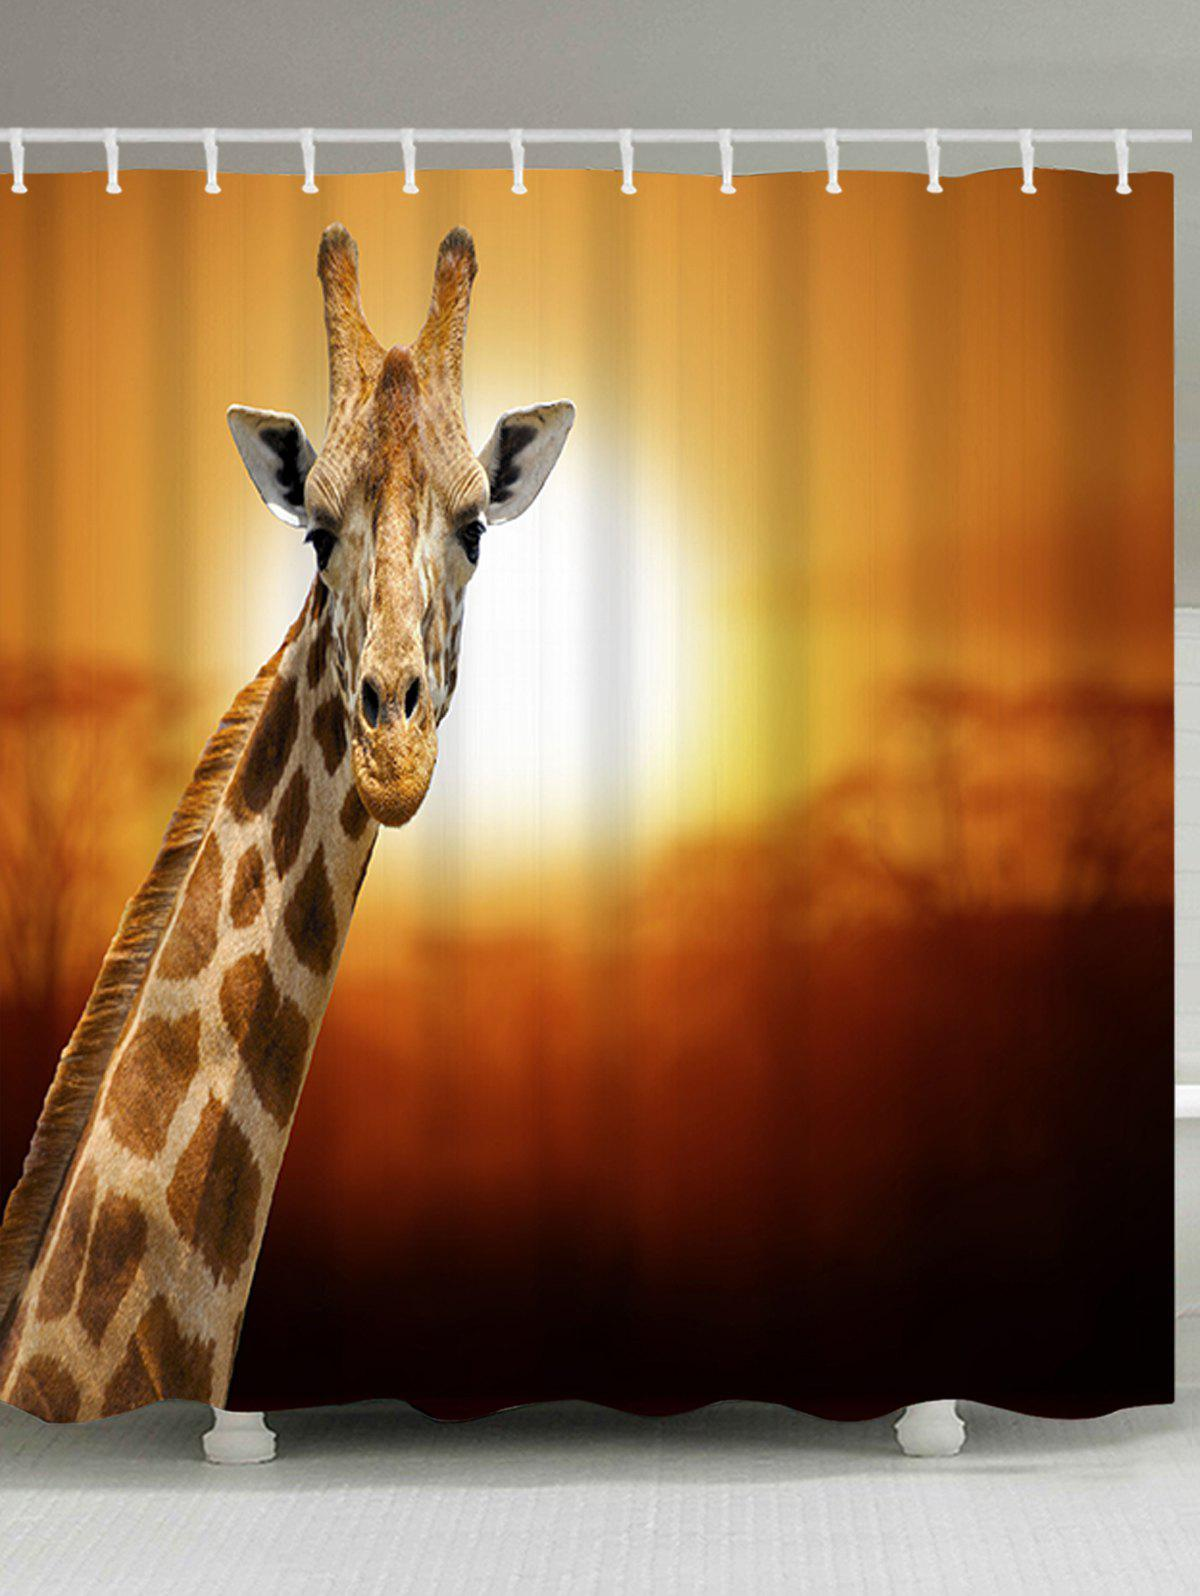 Trendy Sunset Giraffe Scenery Print Bathroom Shower Curtain